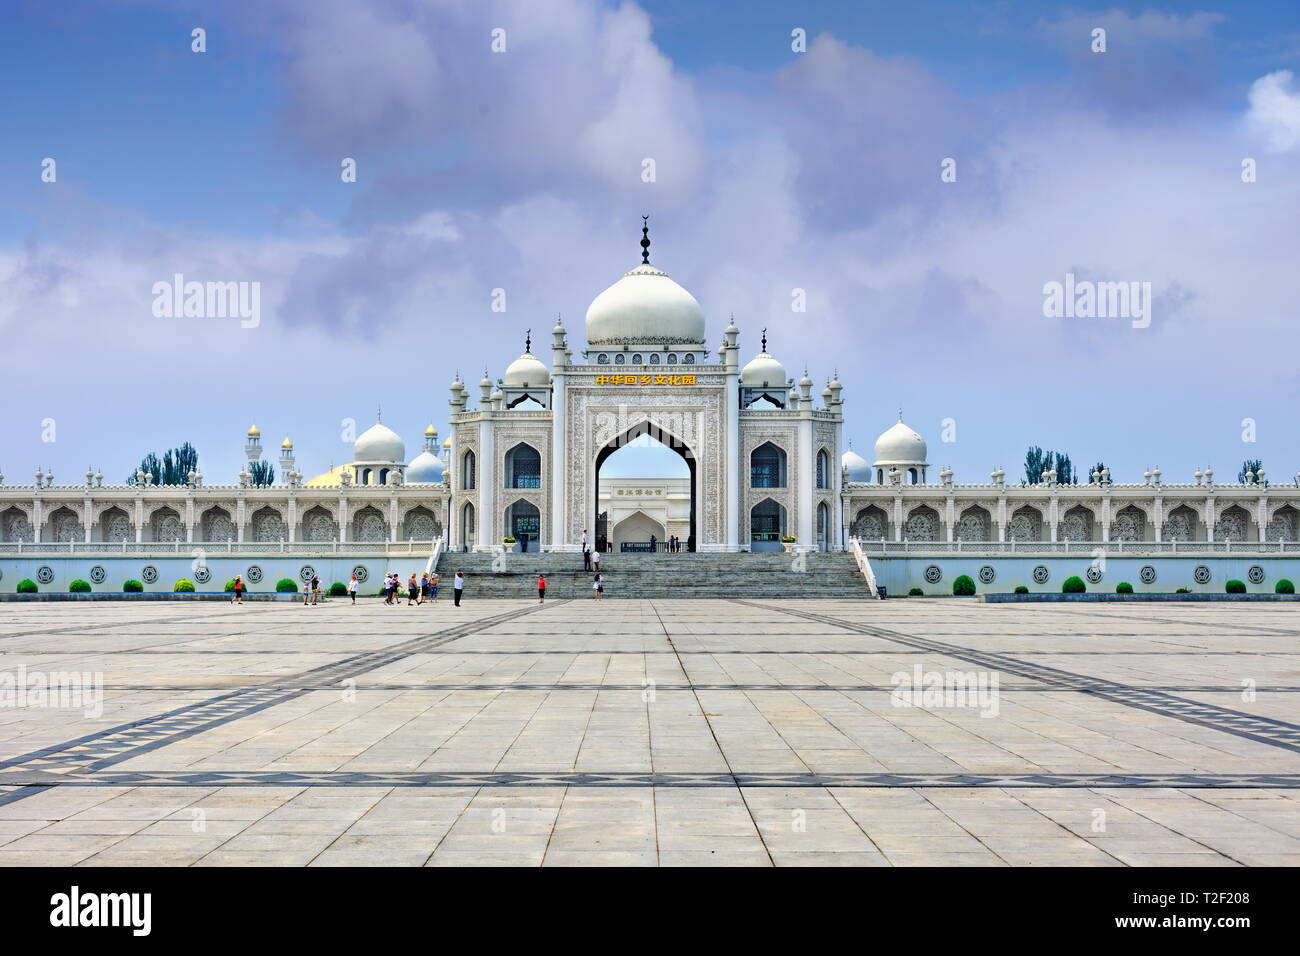 The impressive white mosque at the Hui Cultural center in Yinchuan, Ningxia Province, China Stock Photo